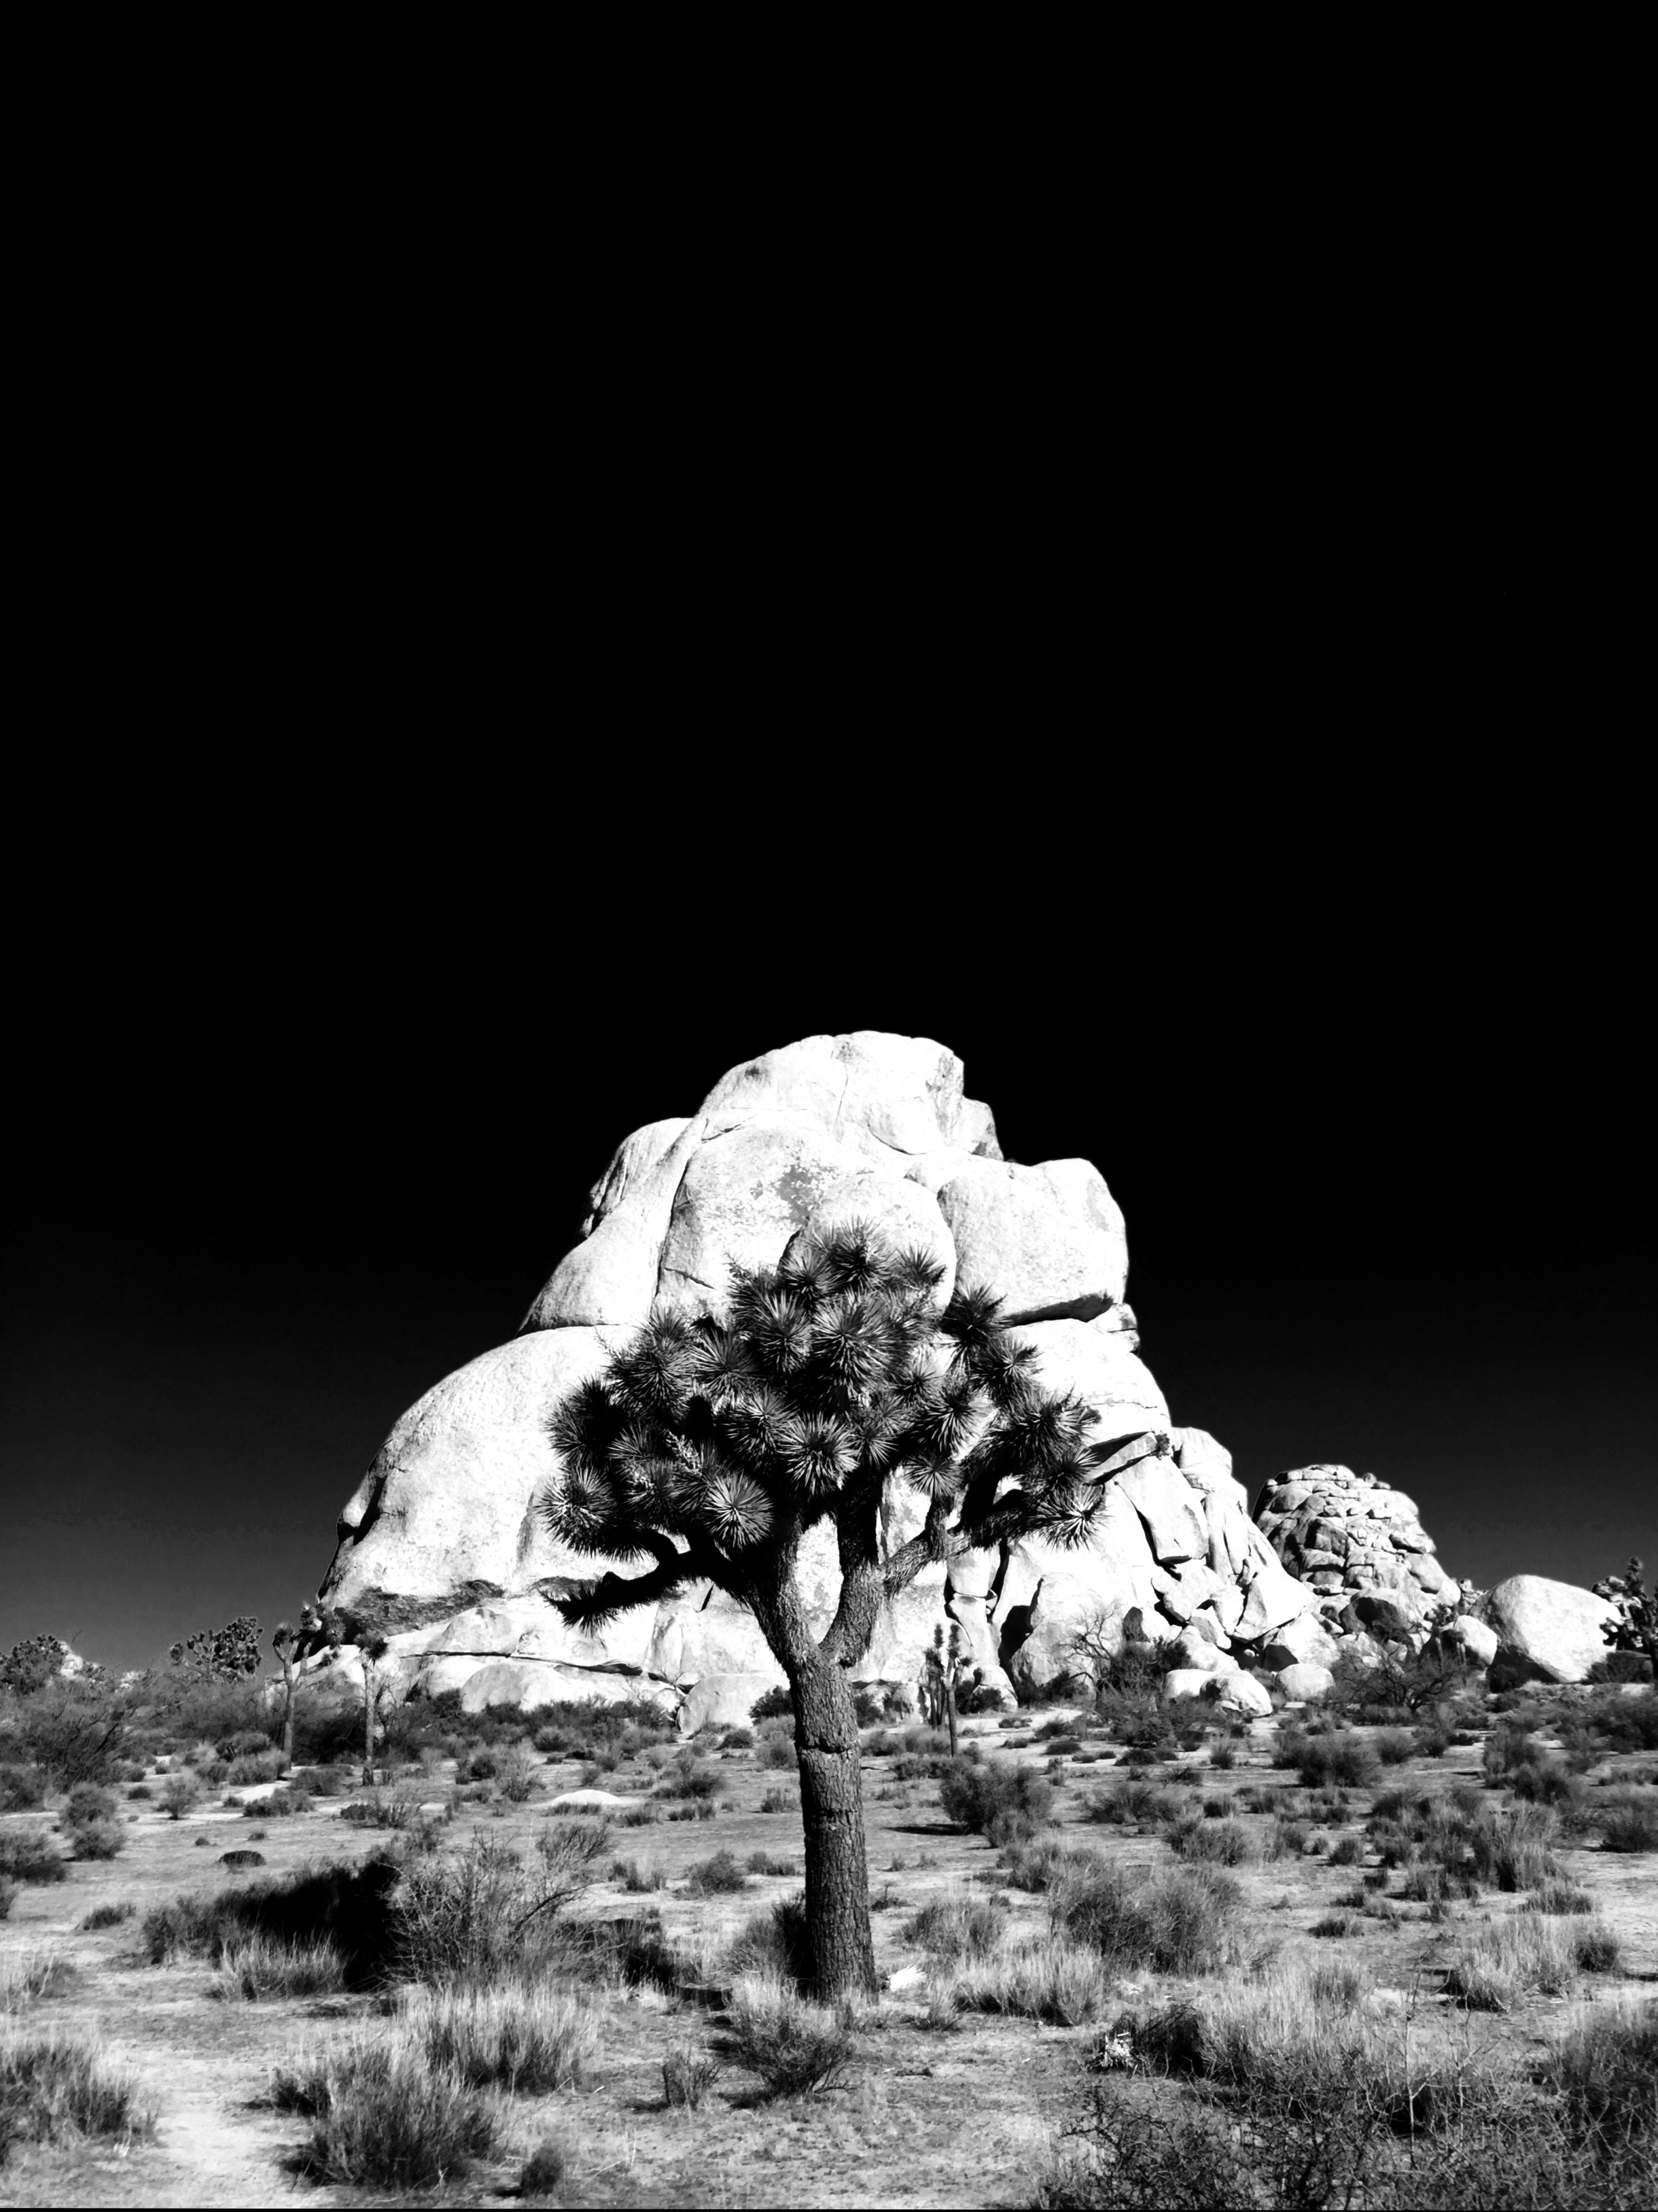 Joshua Tree National Park - by Alistair Eagle